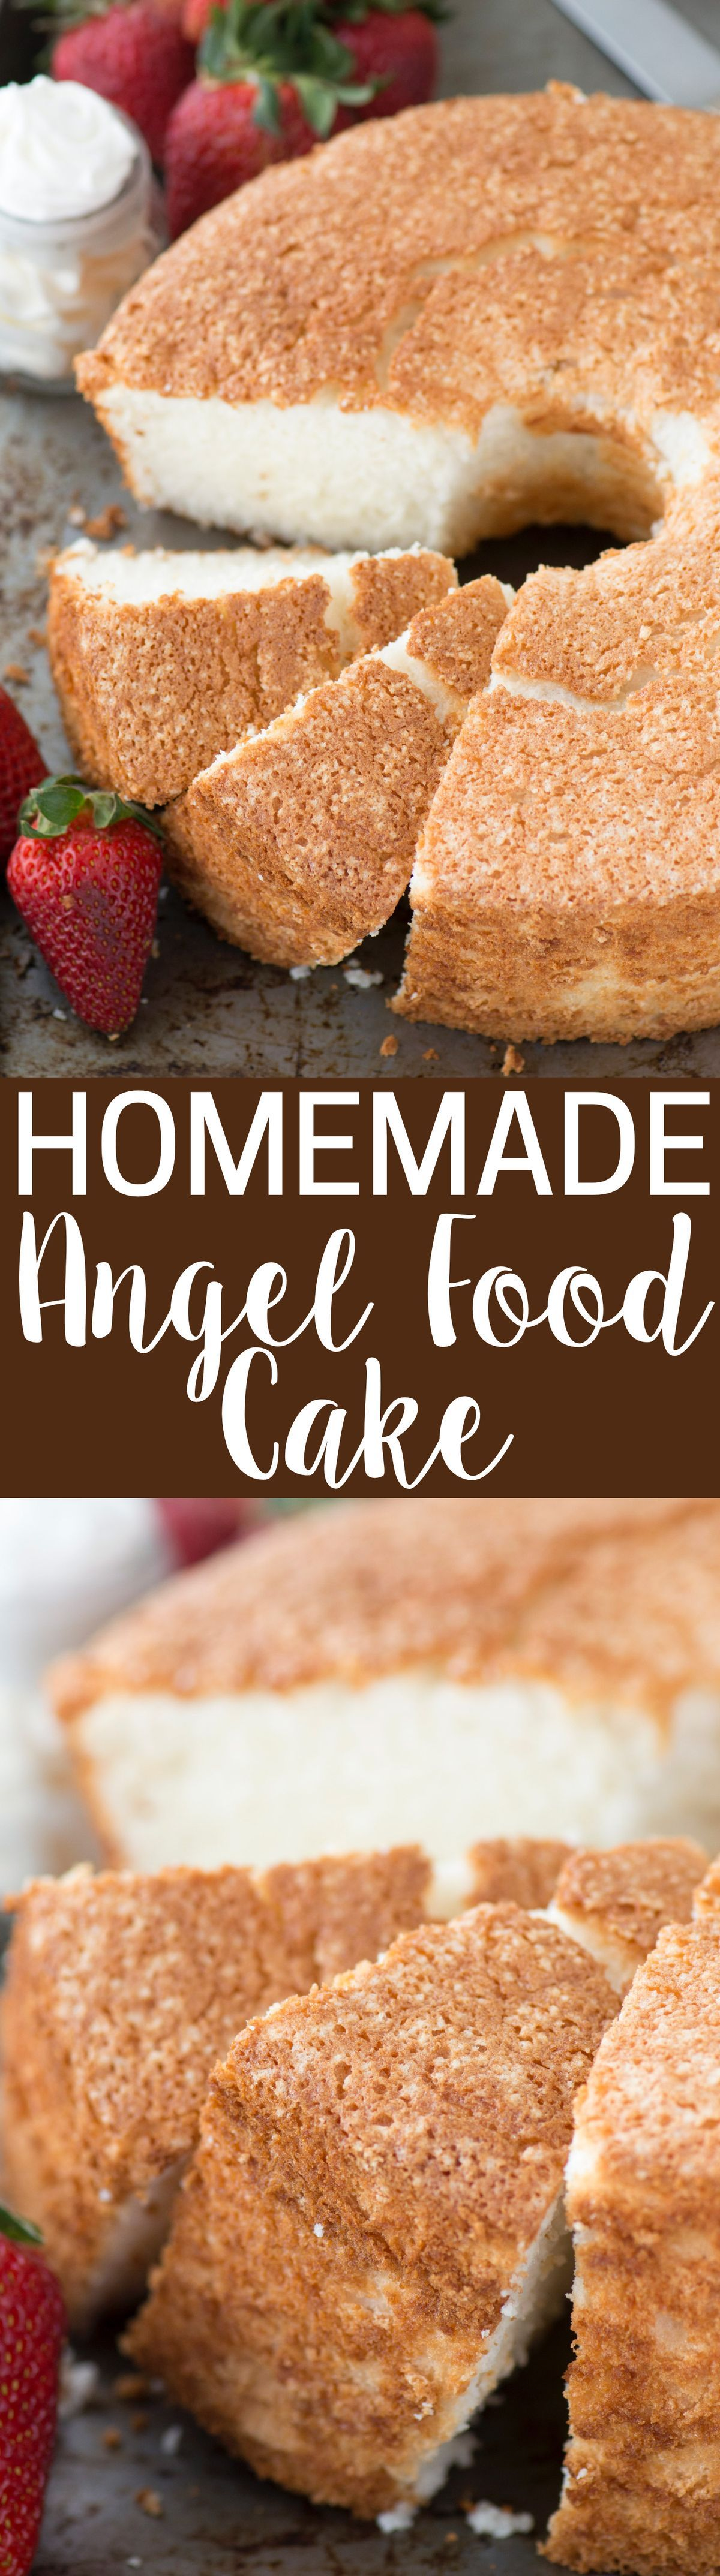 100 homemade angel food cake this is the recipe that everyone this is the recipe that everyone will ask you for this recipe shows you how to use all purpose flour instead of cake flour and you can easily make it forumfinder Images